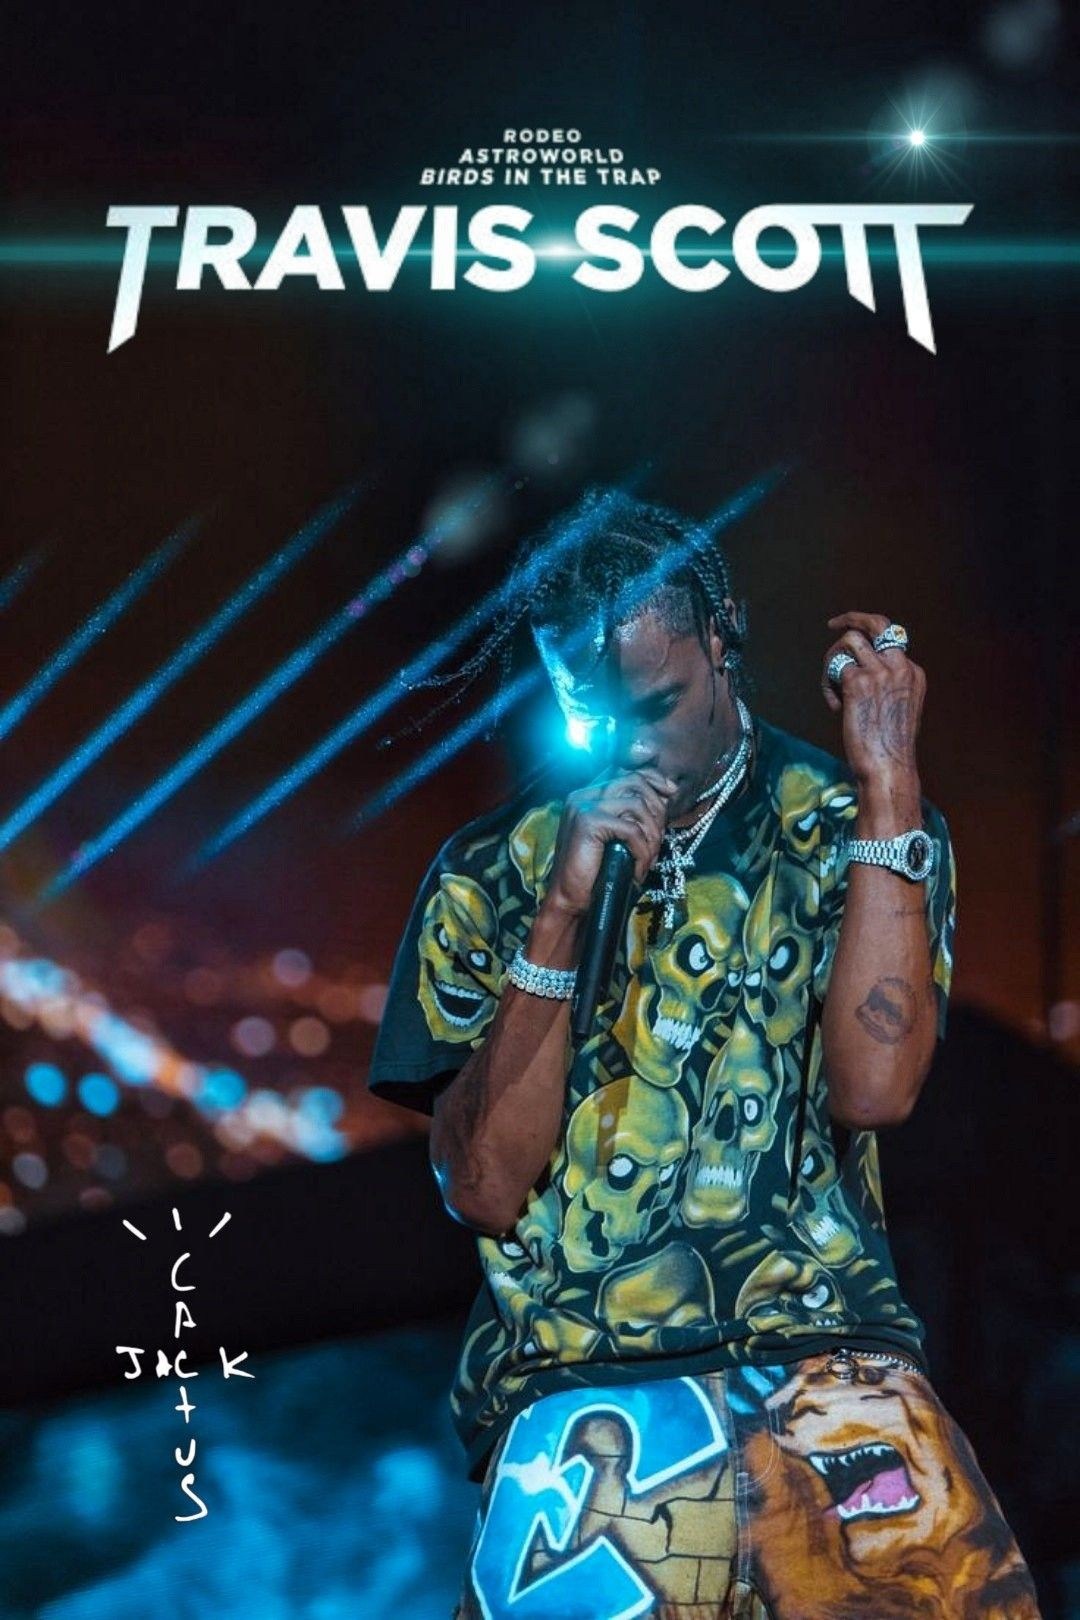 Pin on Travis Scott